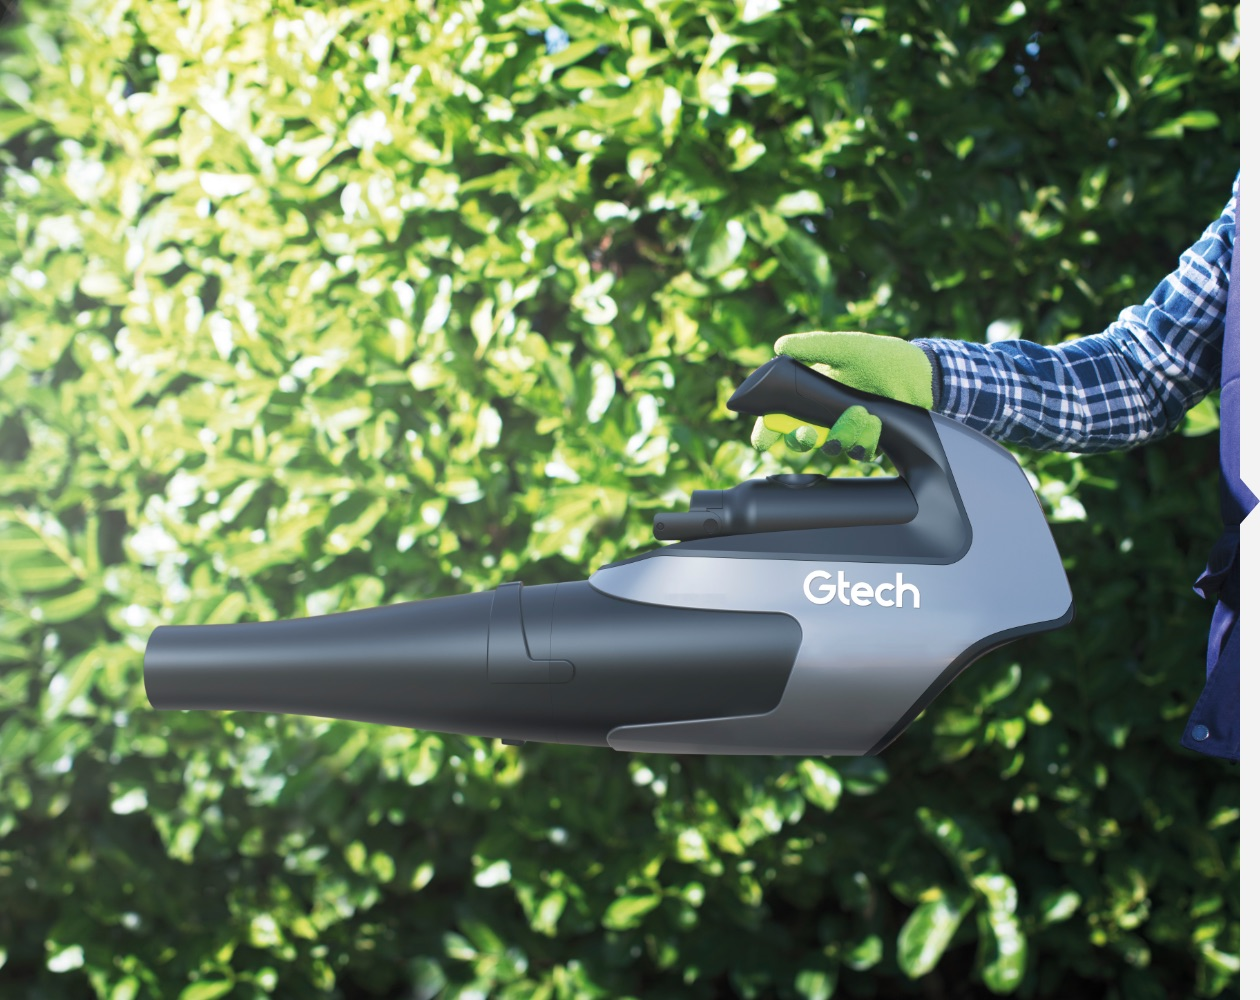 Lightweight battery powered leafblower